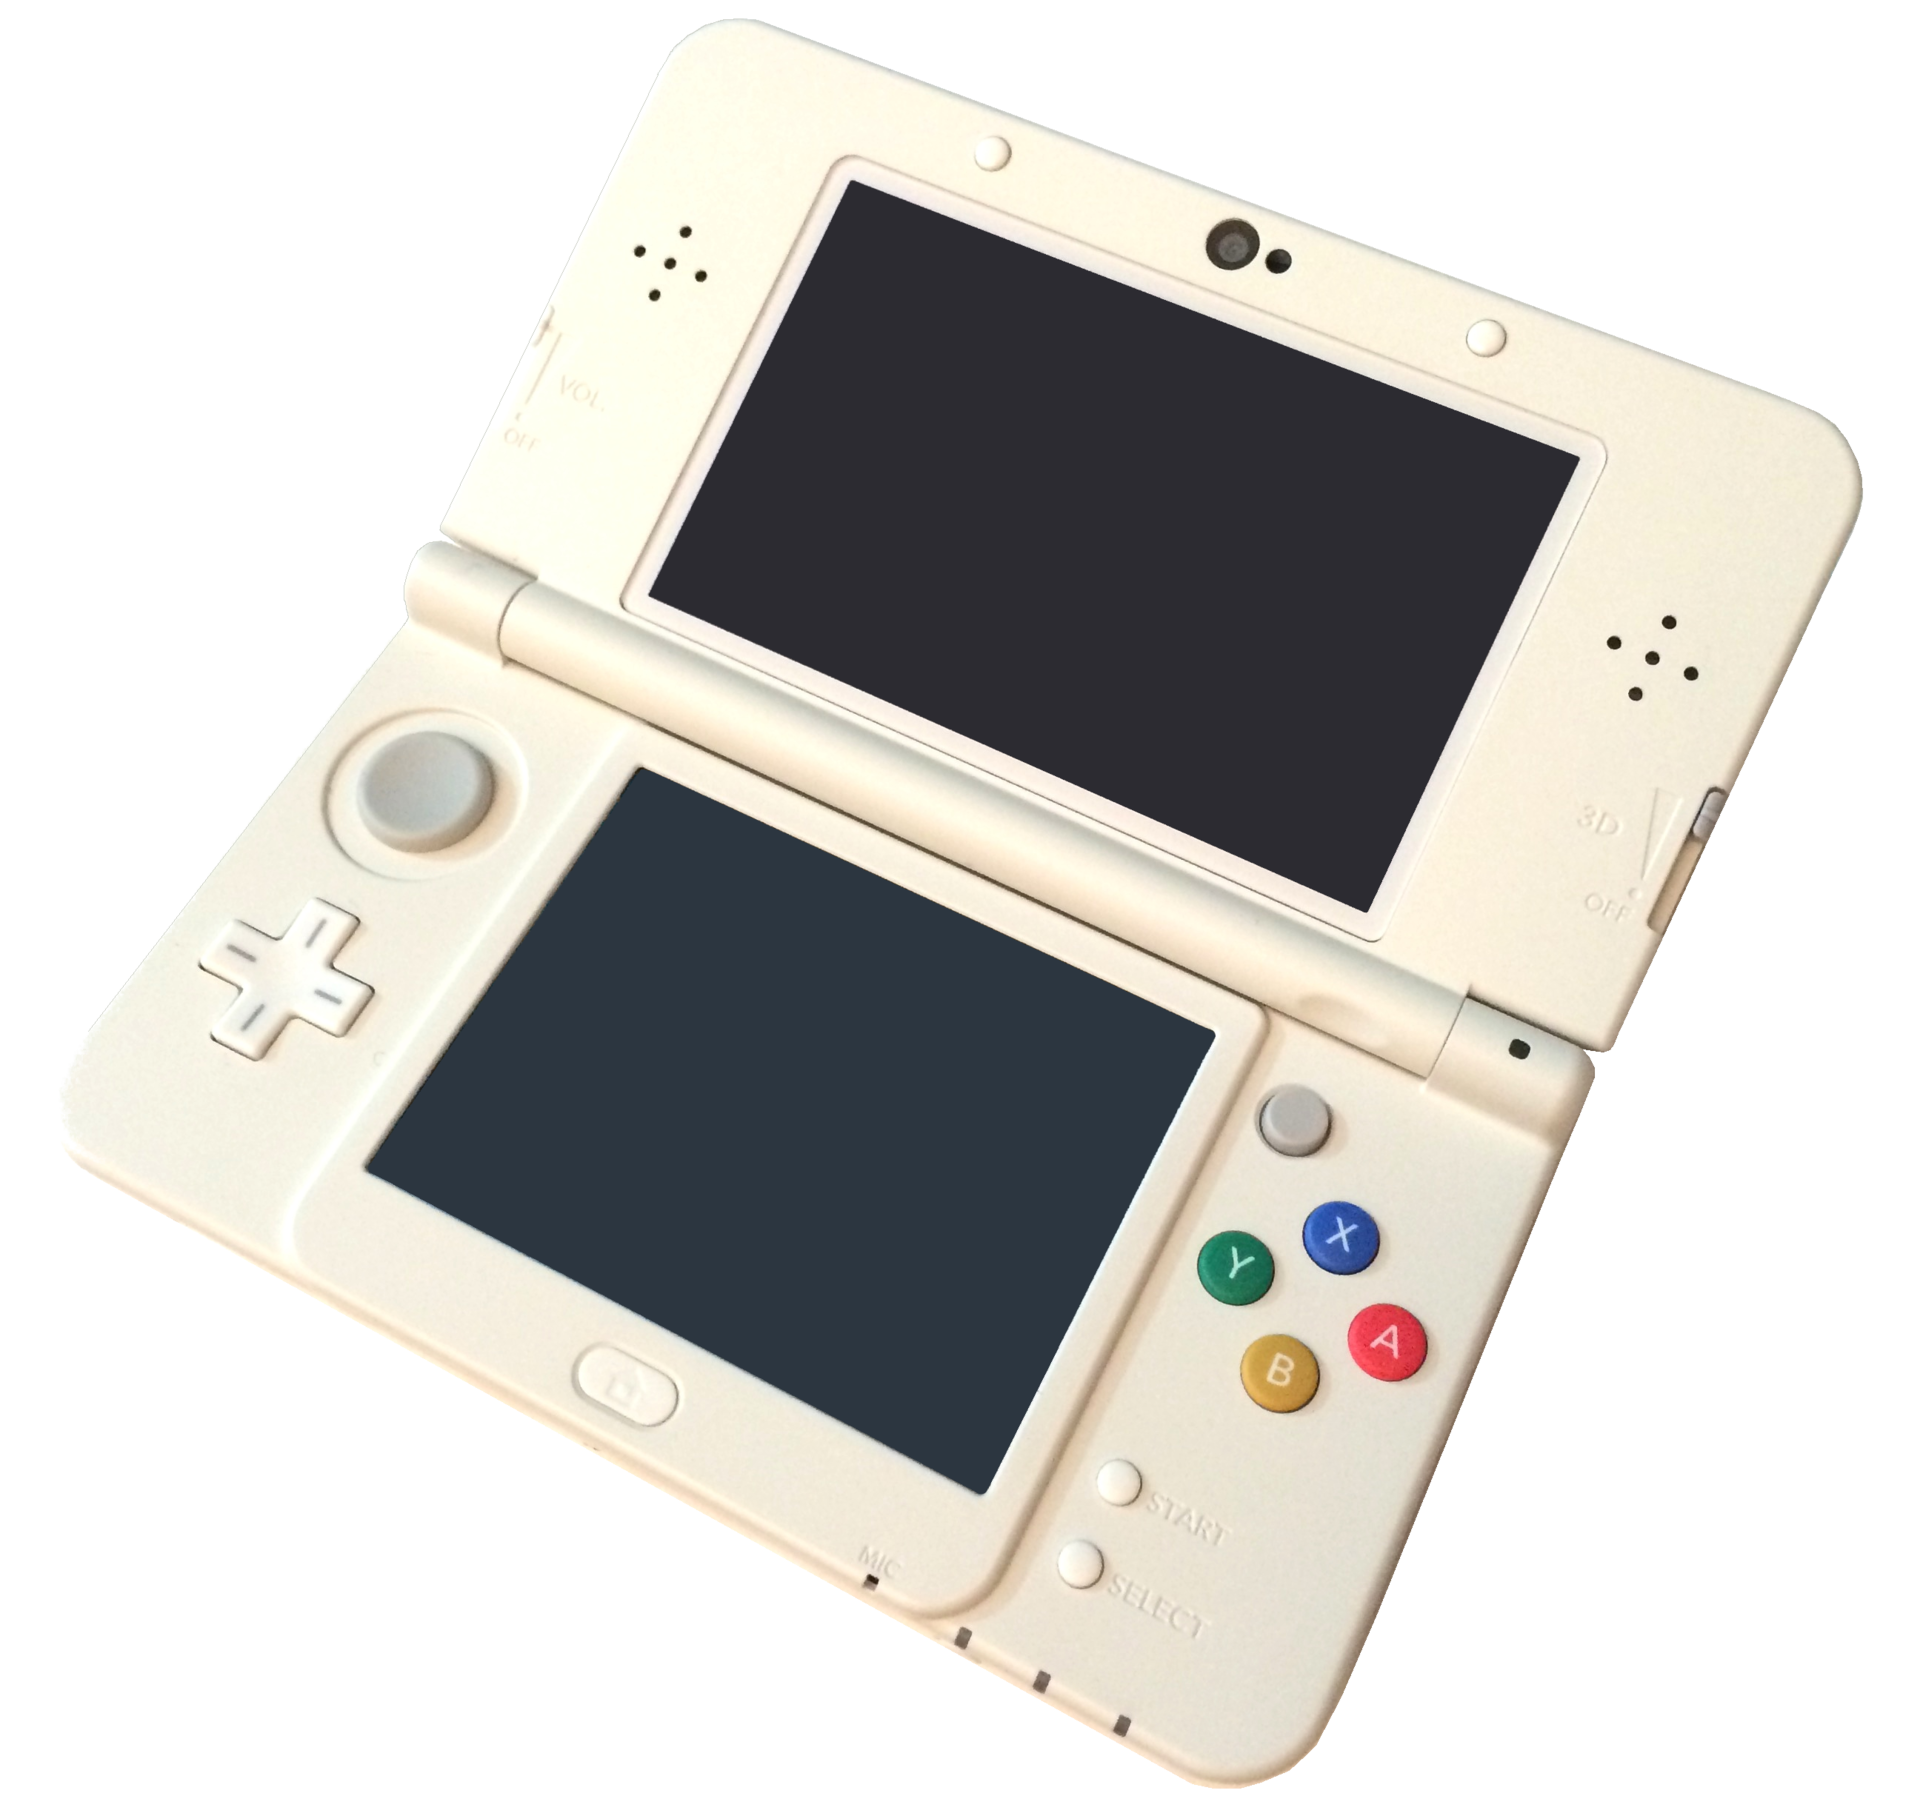 New Nintendo 3ds Xl : New nintendo ds wikipedia